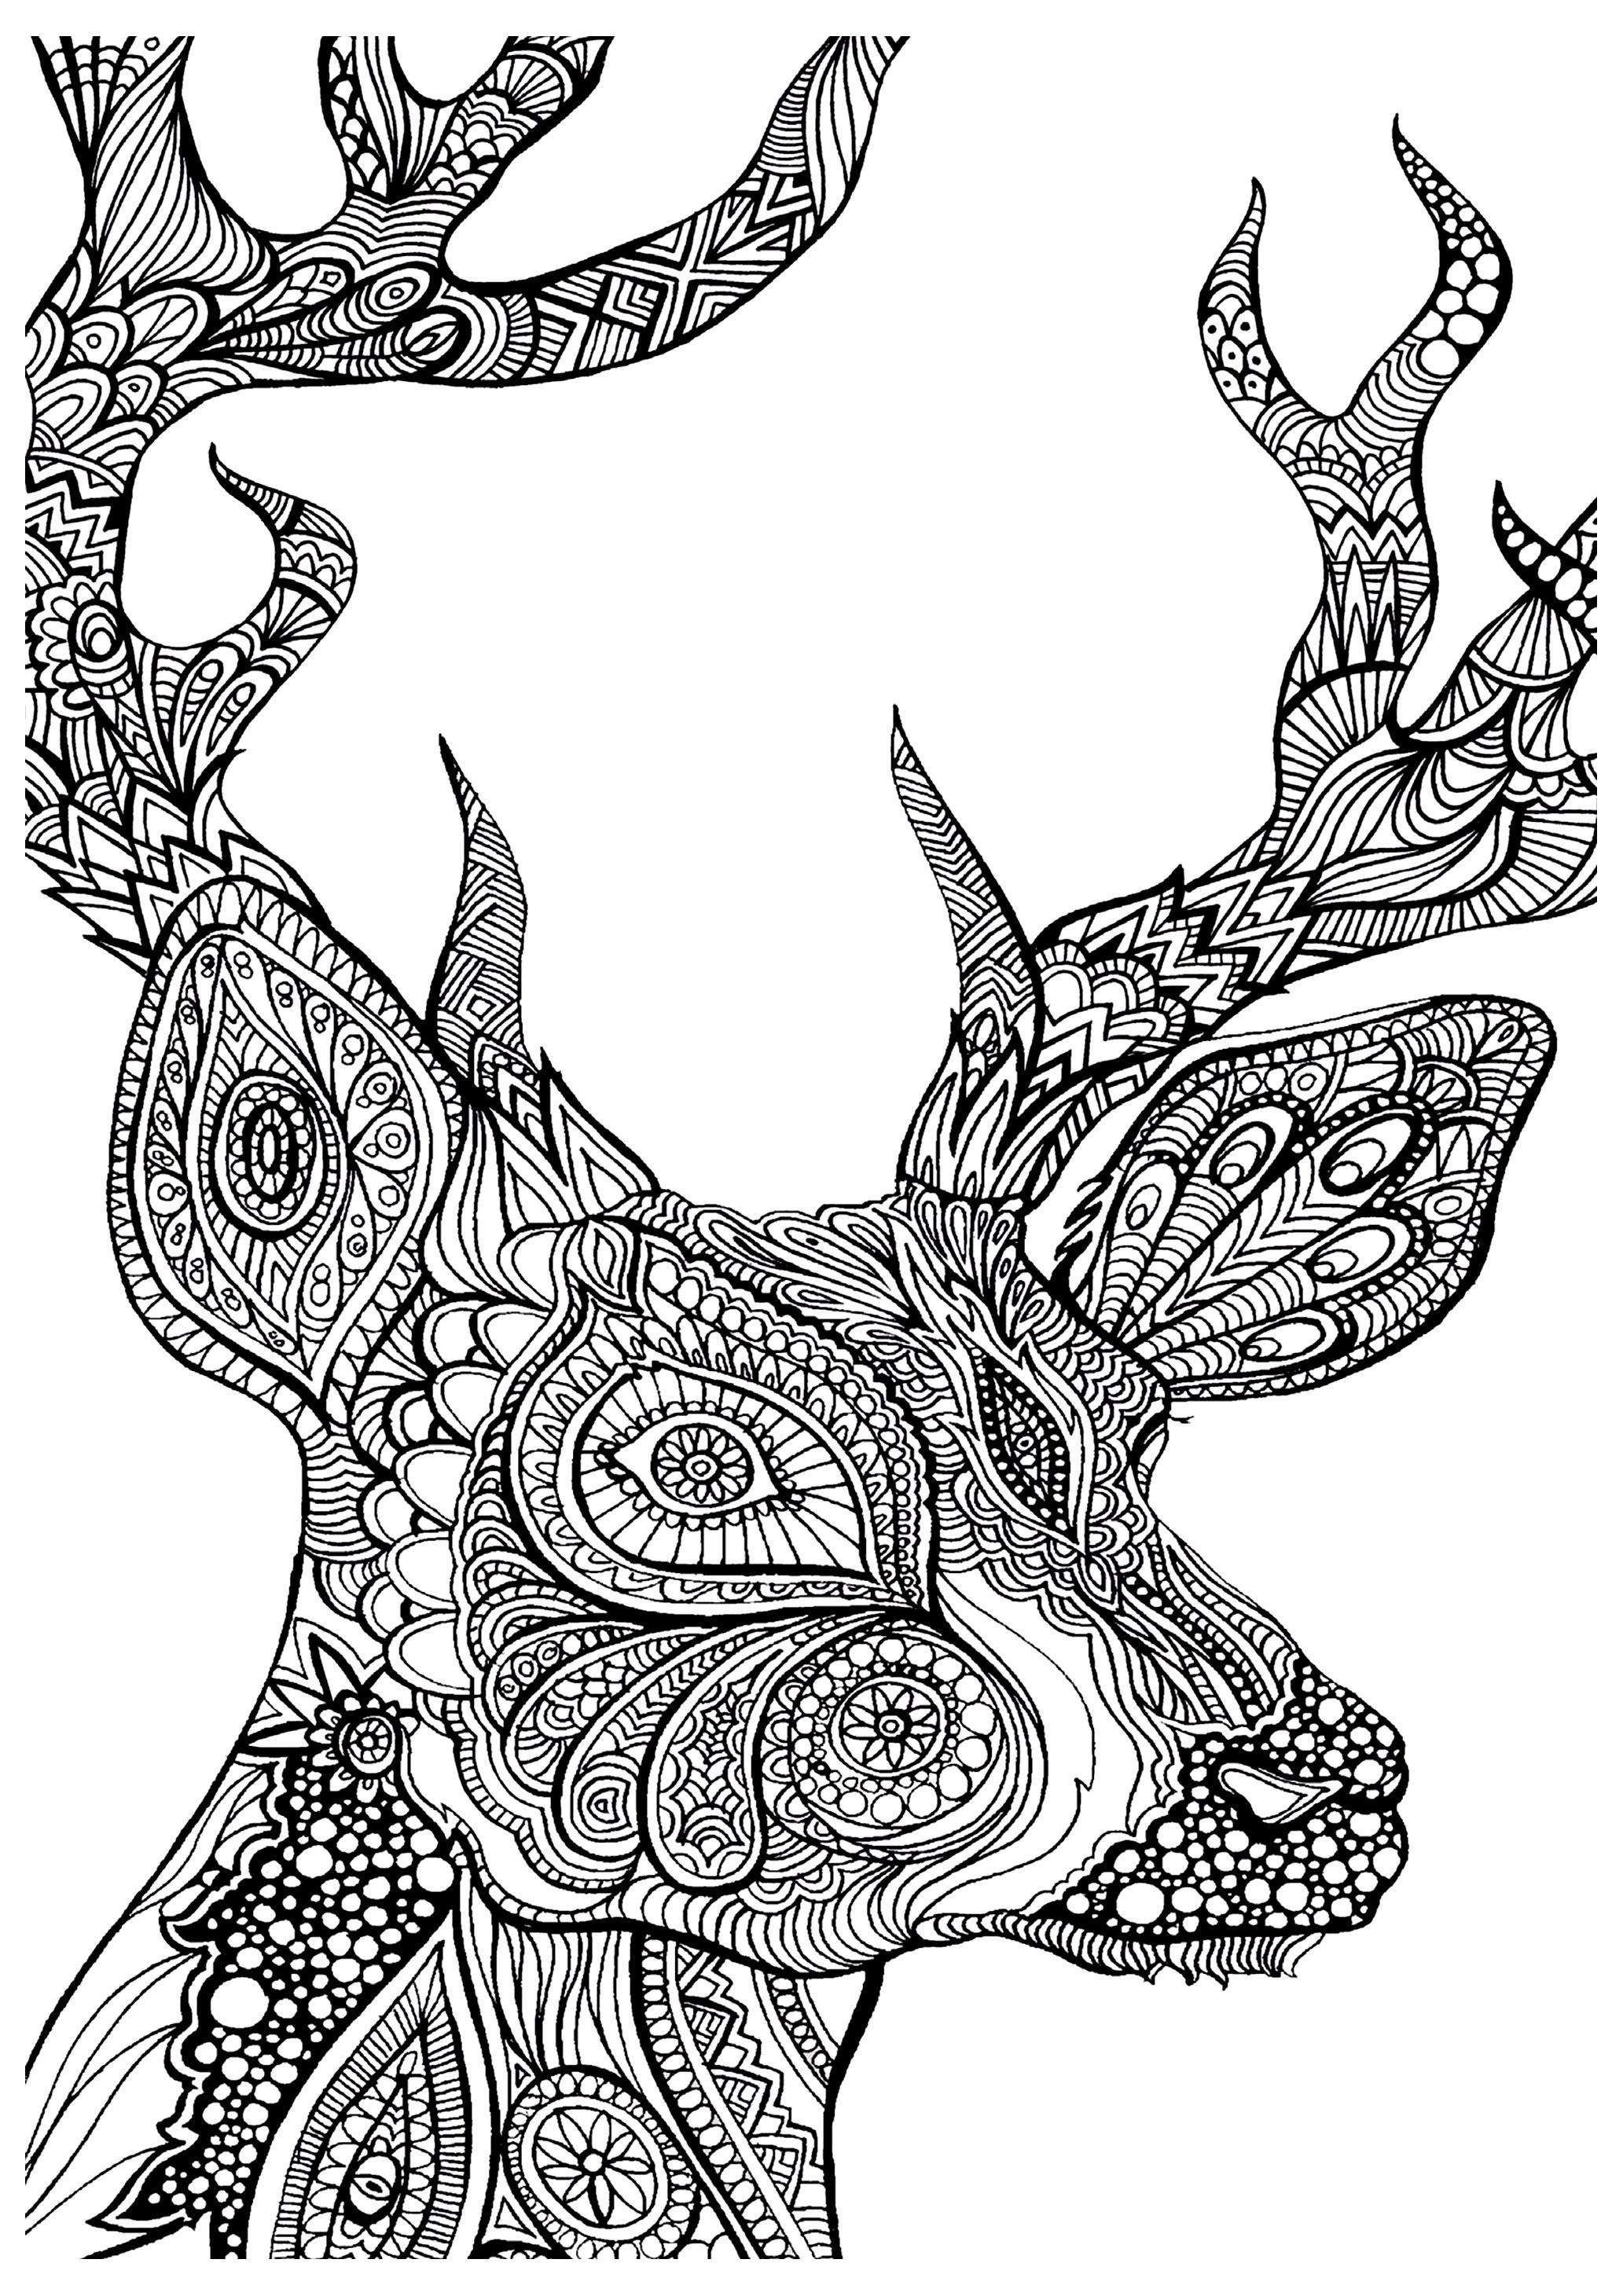 Cerf Zoom Coloriages Cerfs Just Color Desenhos Para Colorir